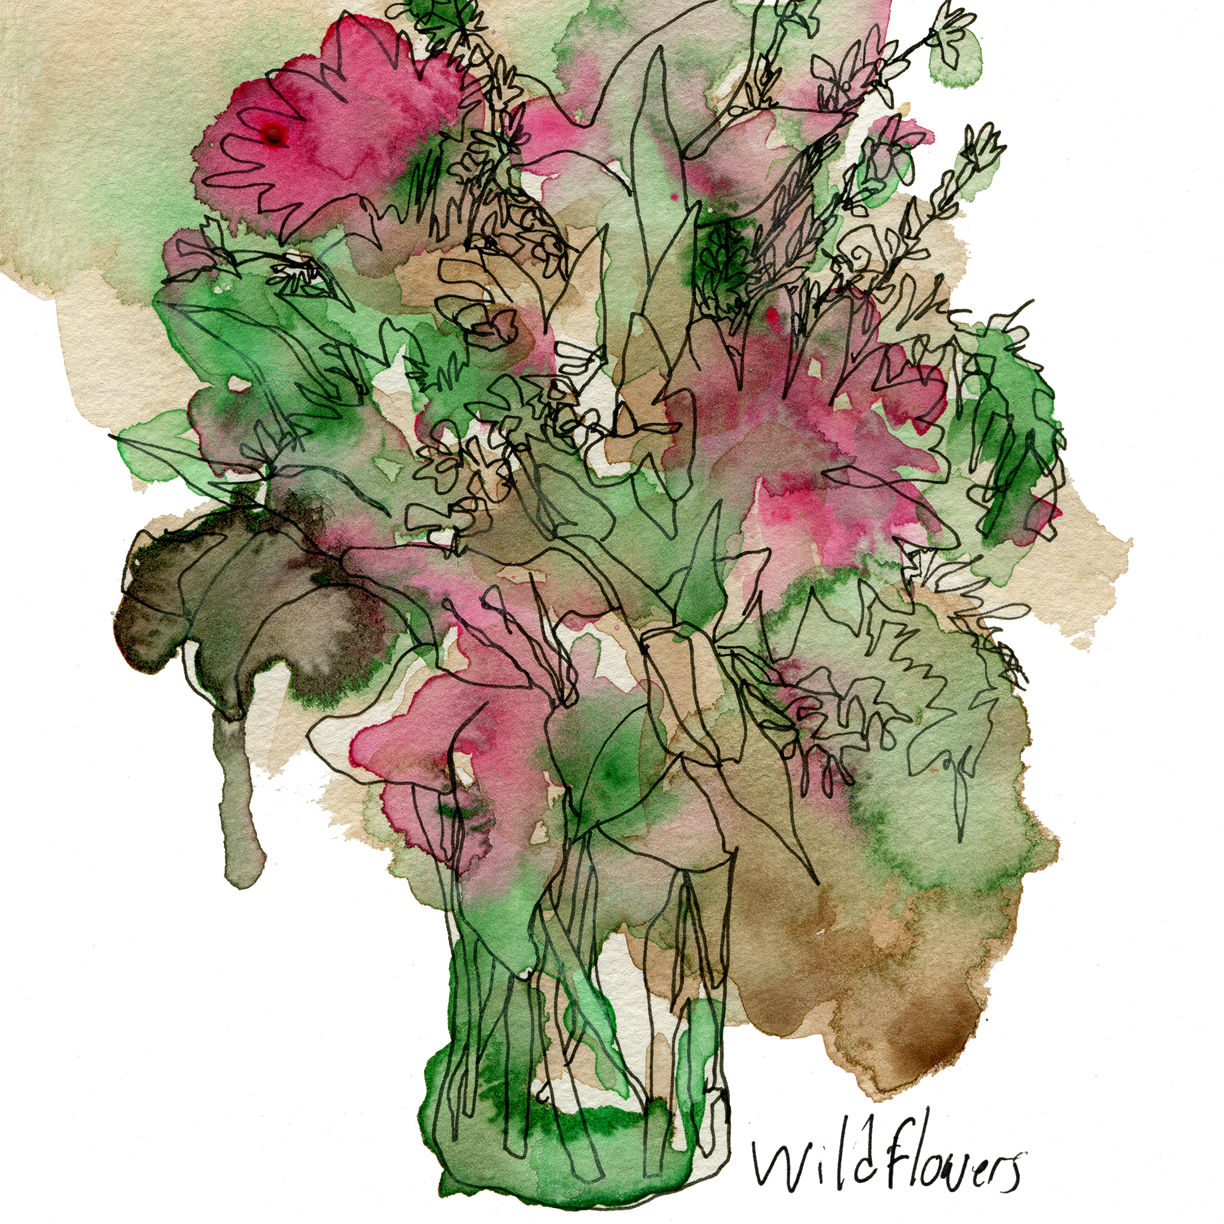 Wildflowers by Hannah Hooper-Giclée Print-Poster Child Prints